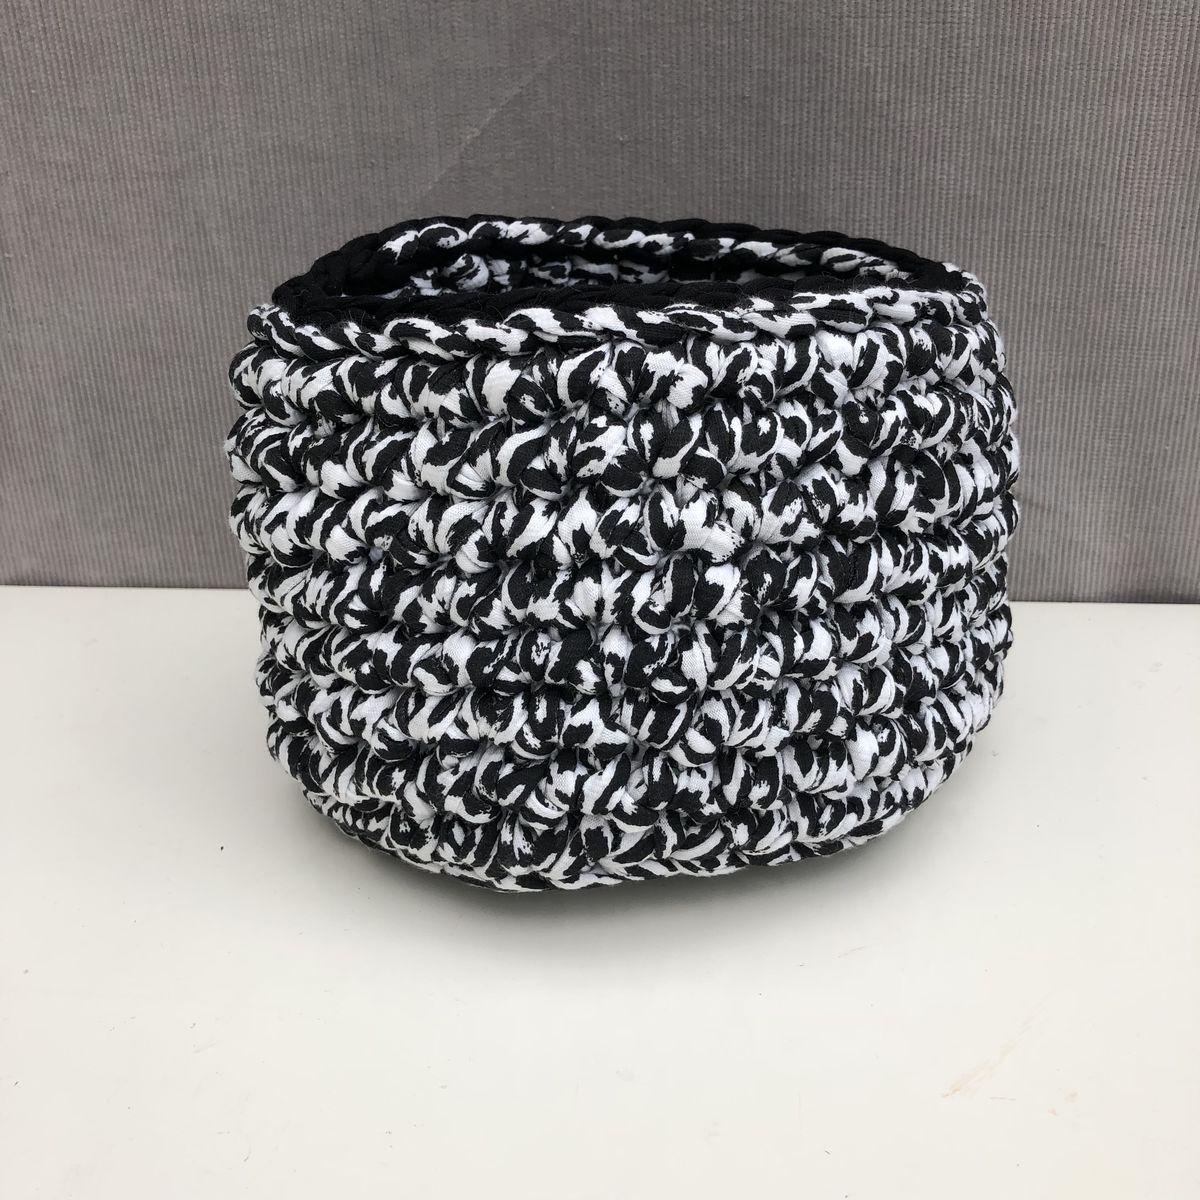 Black and white storage basket  - product images  of